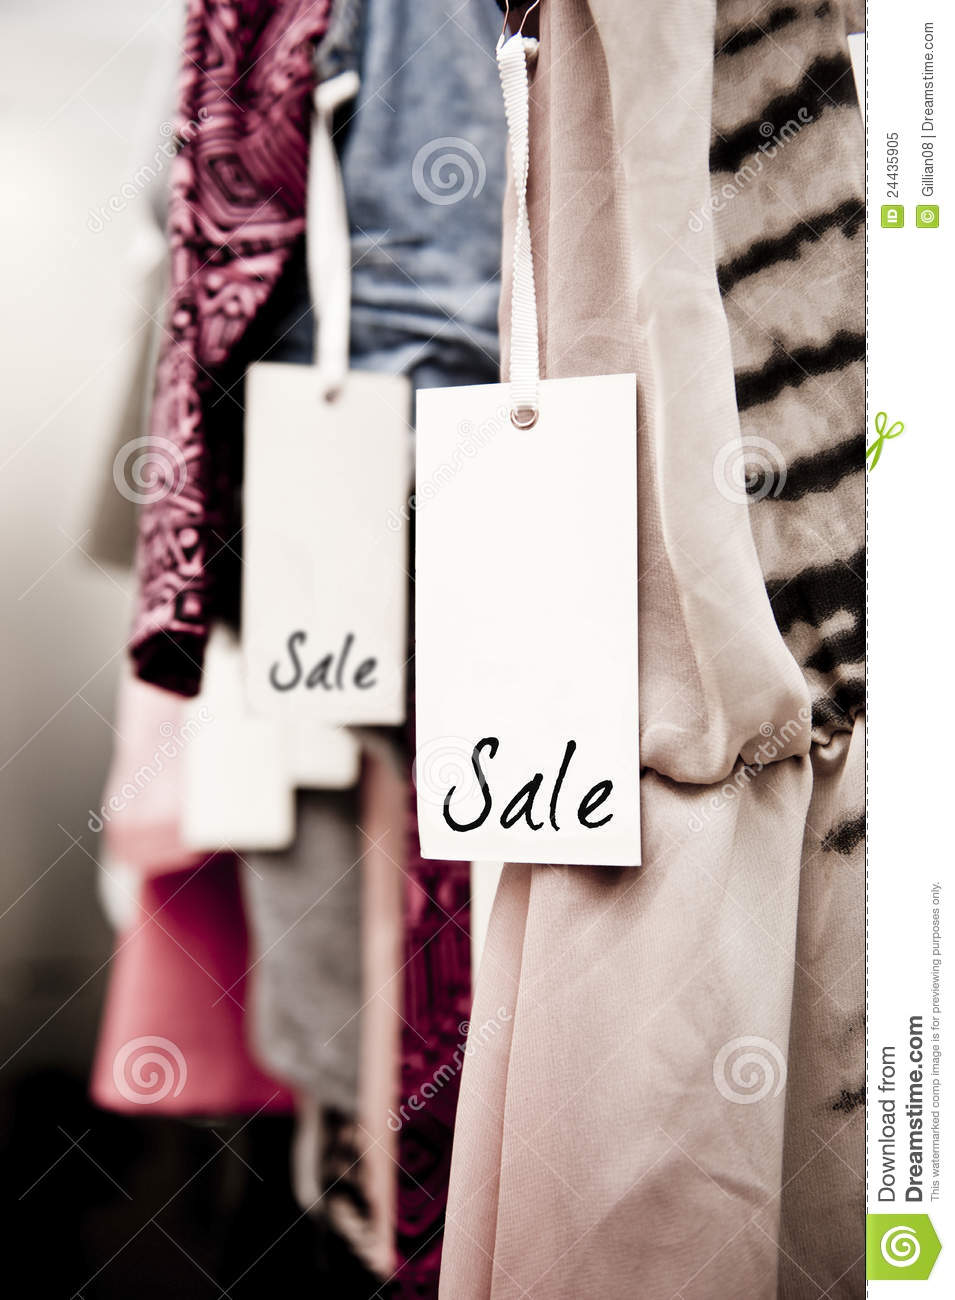 How to Sell Boutique Clothes How to Sell Boutique Clothes new pics